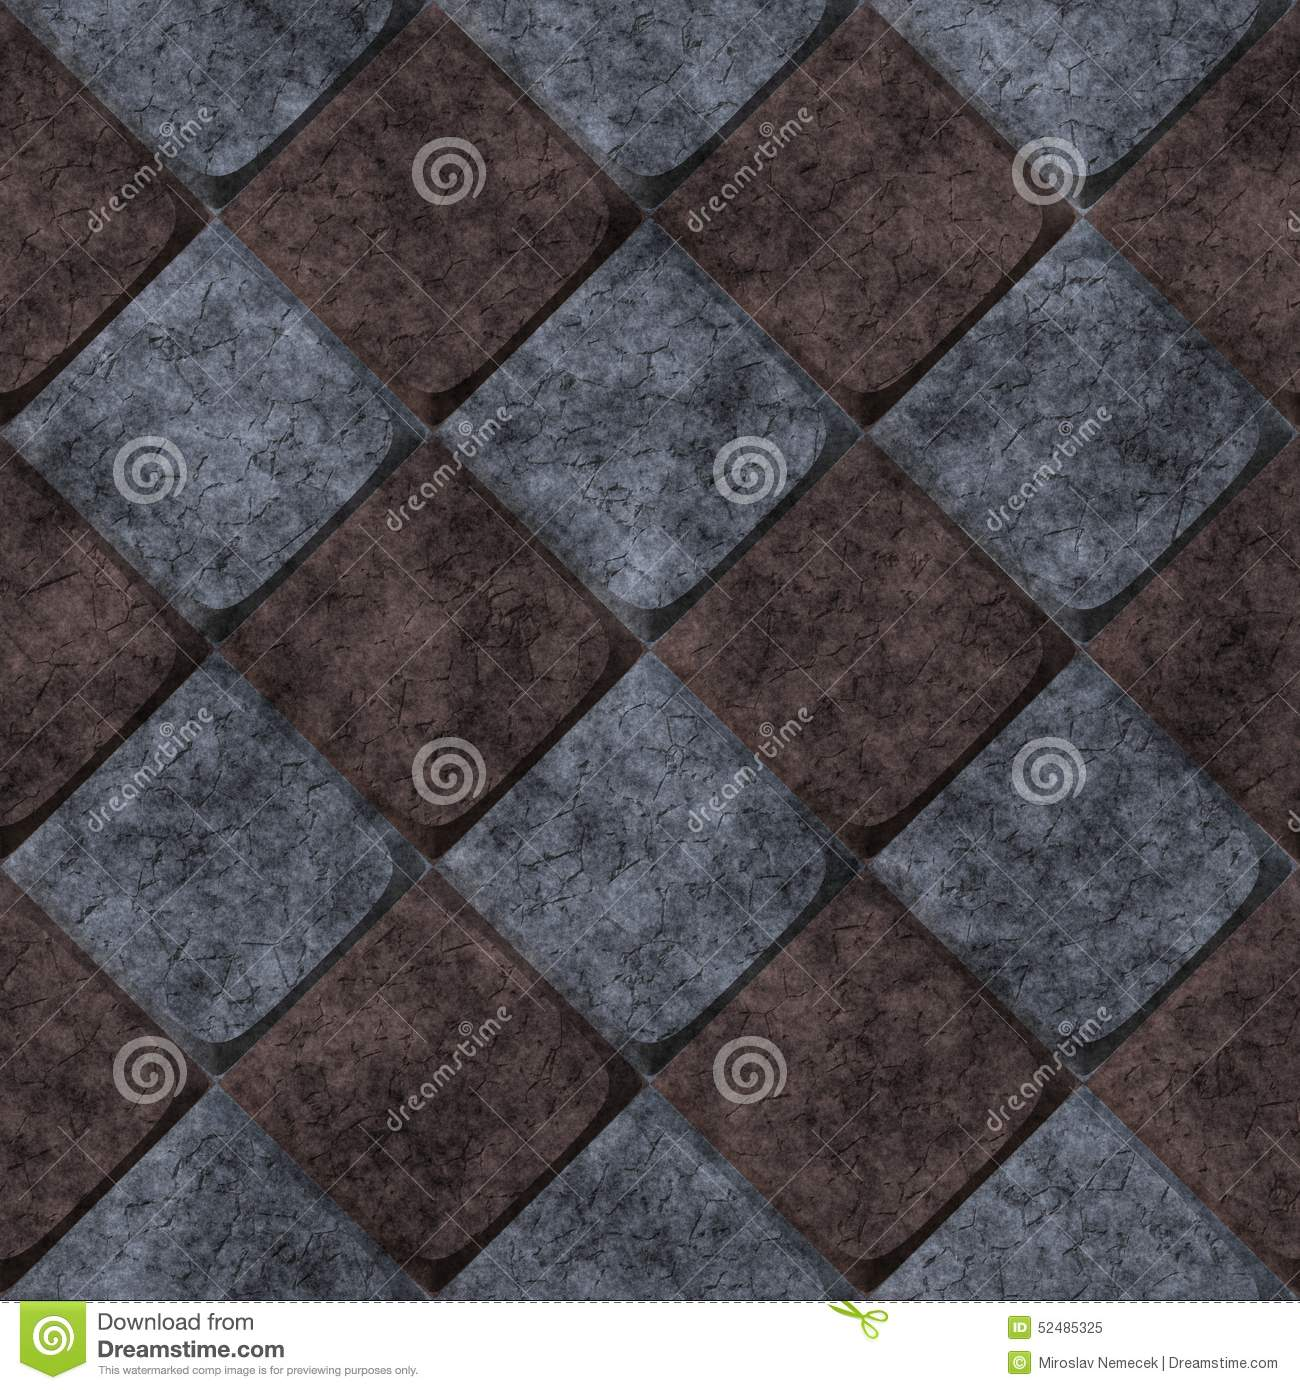 generated seamless tile background - photo #25